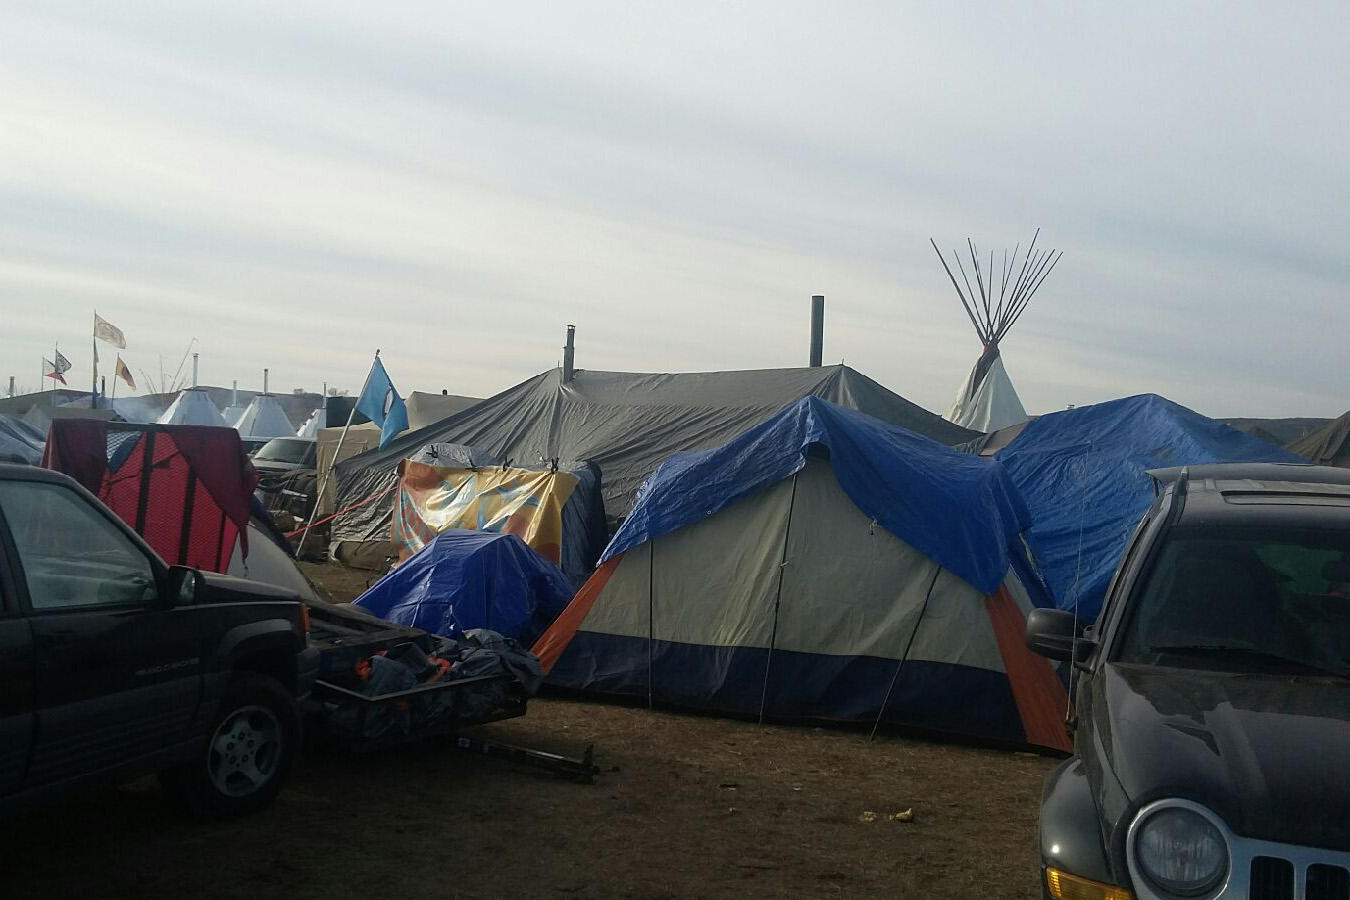 Stay or go? Tribe gives conflicting messages to protest camp